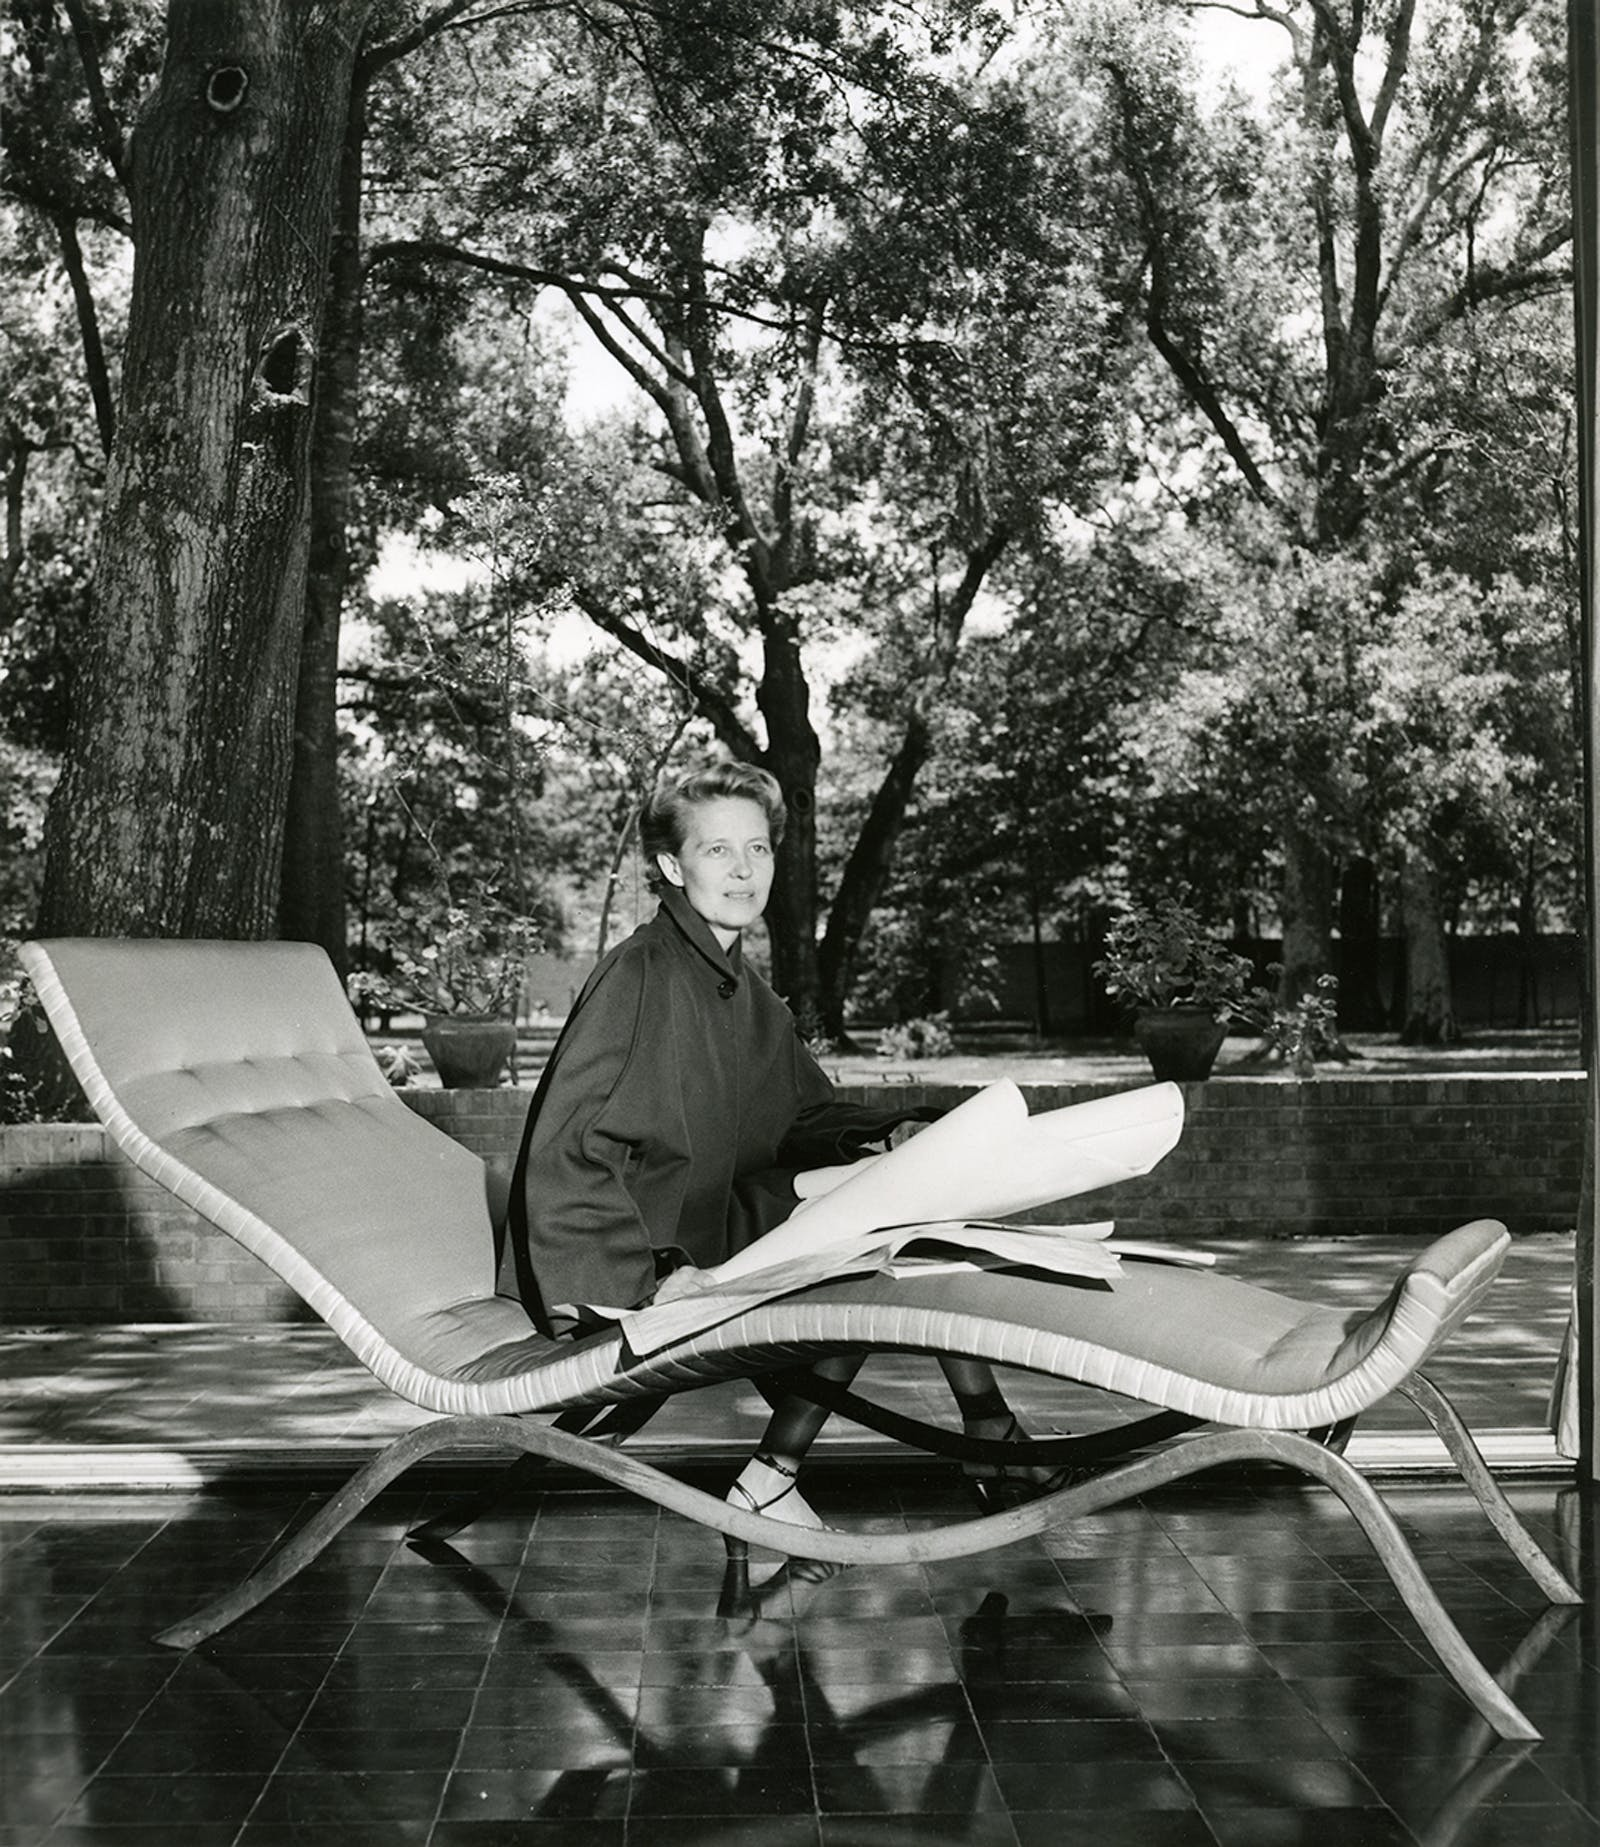 Dominique de Menil, in the early 1950s, wearing Charles James on a Charles James chaise lounge in the de Menil house in Houston.